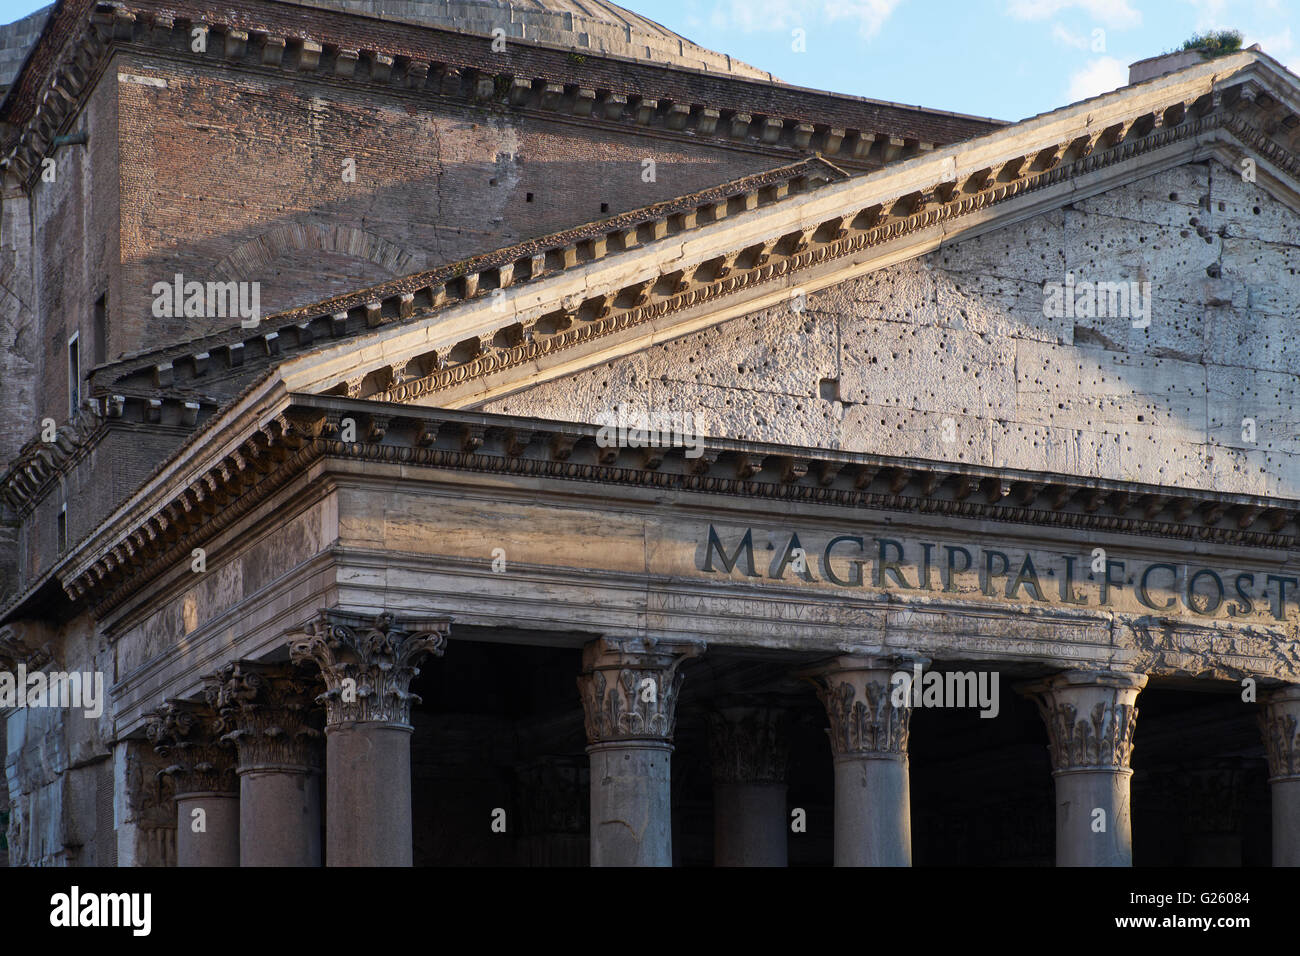 Rome Pantheon Pediment - Stock Image